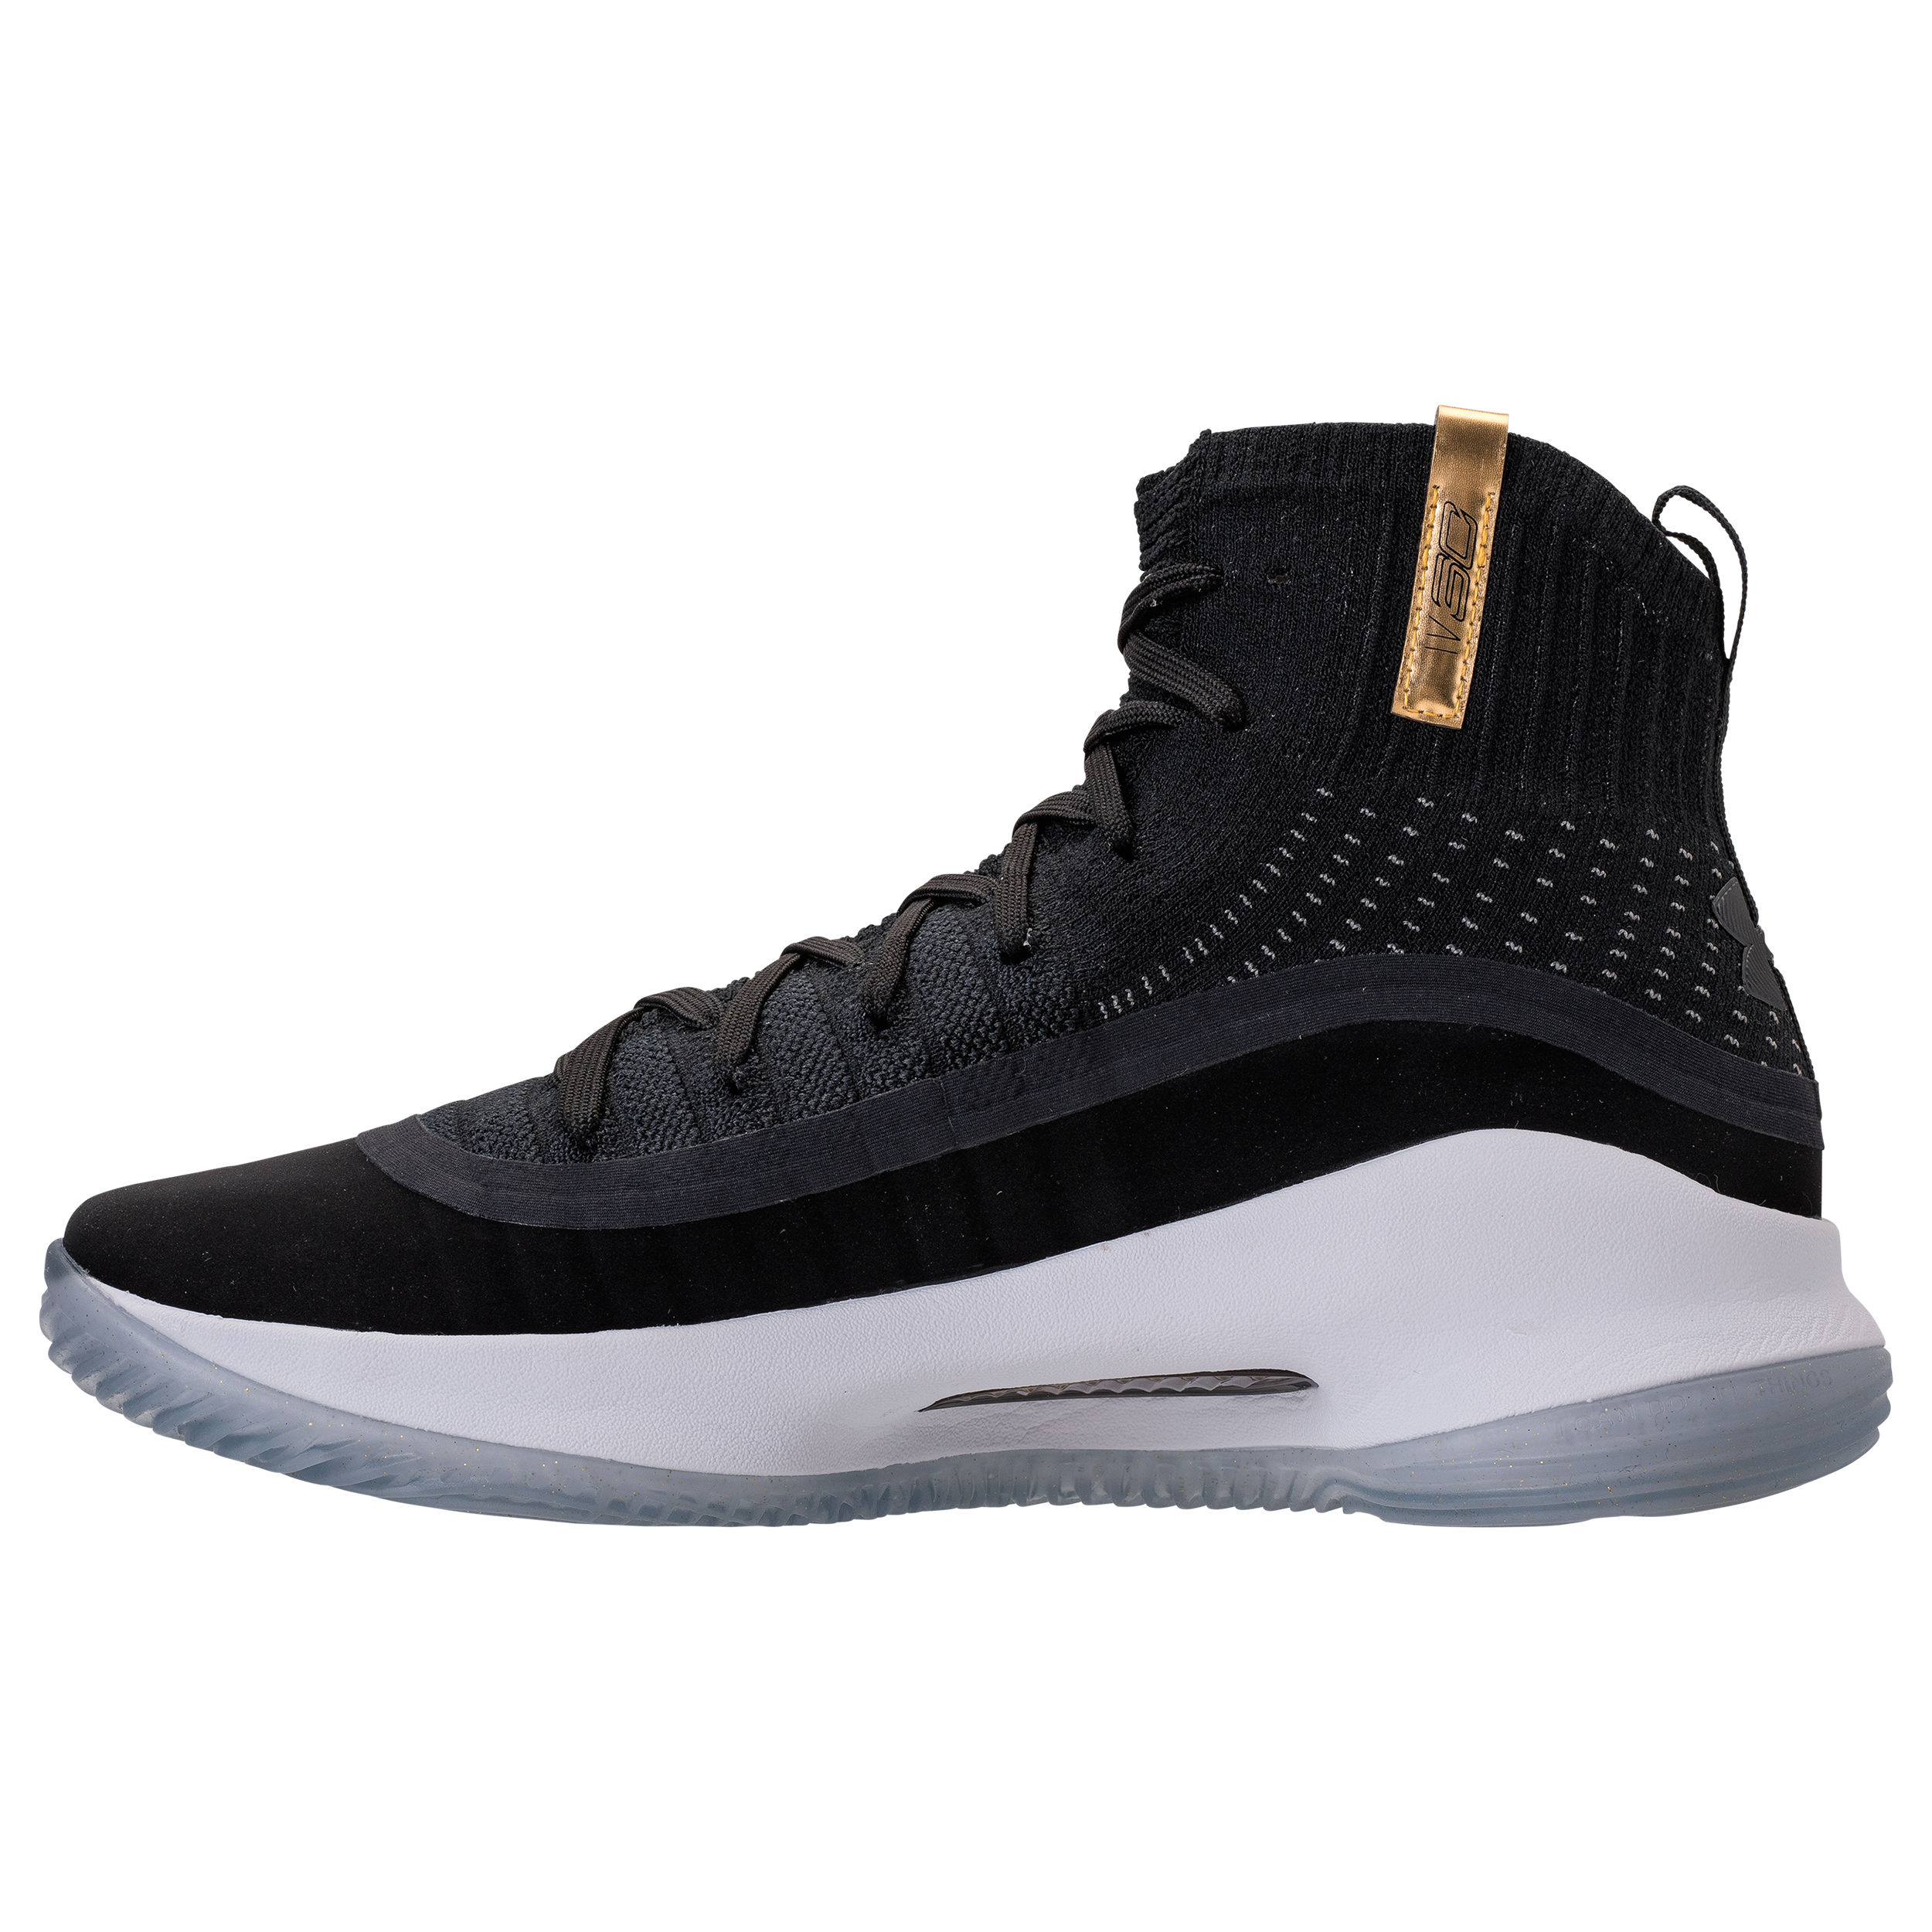 9dae2790329 Under armour curry 4 black gold 3 - WearTesters